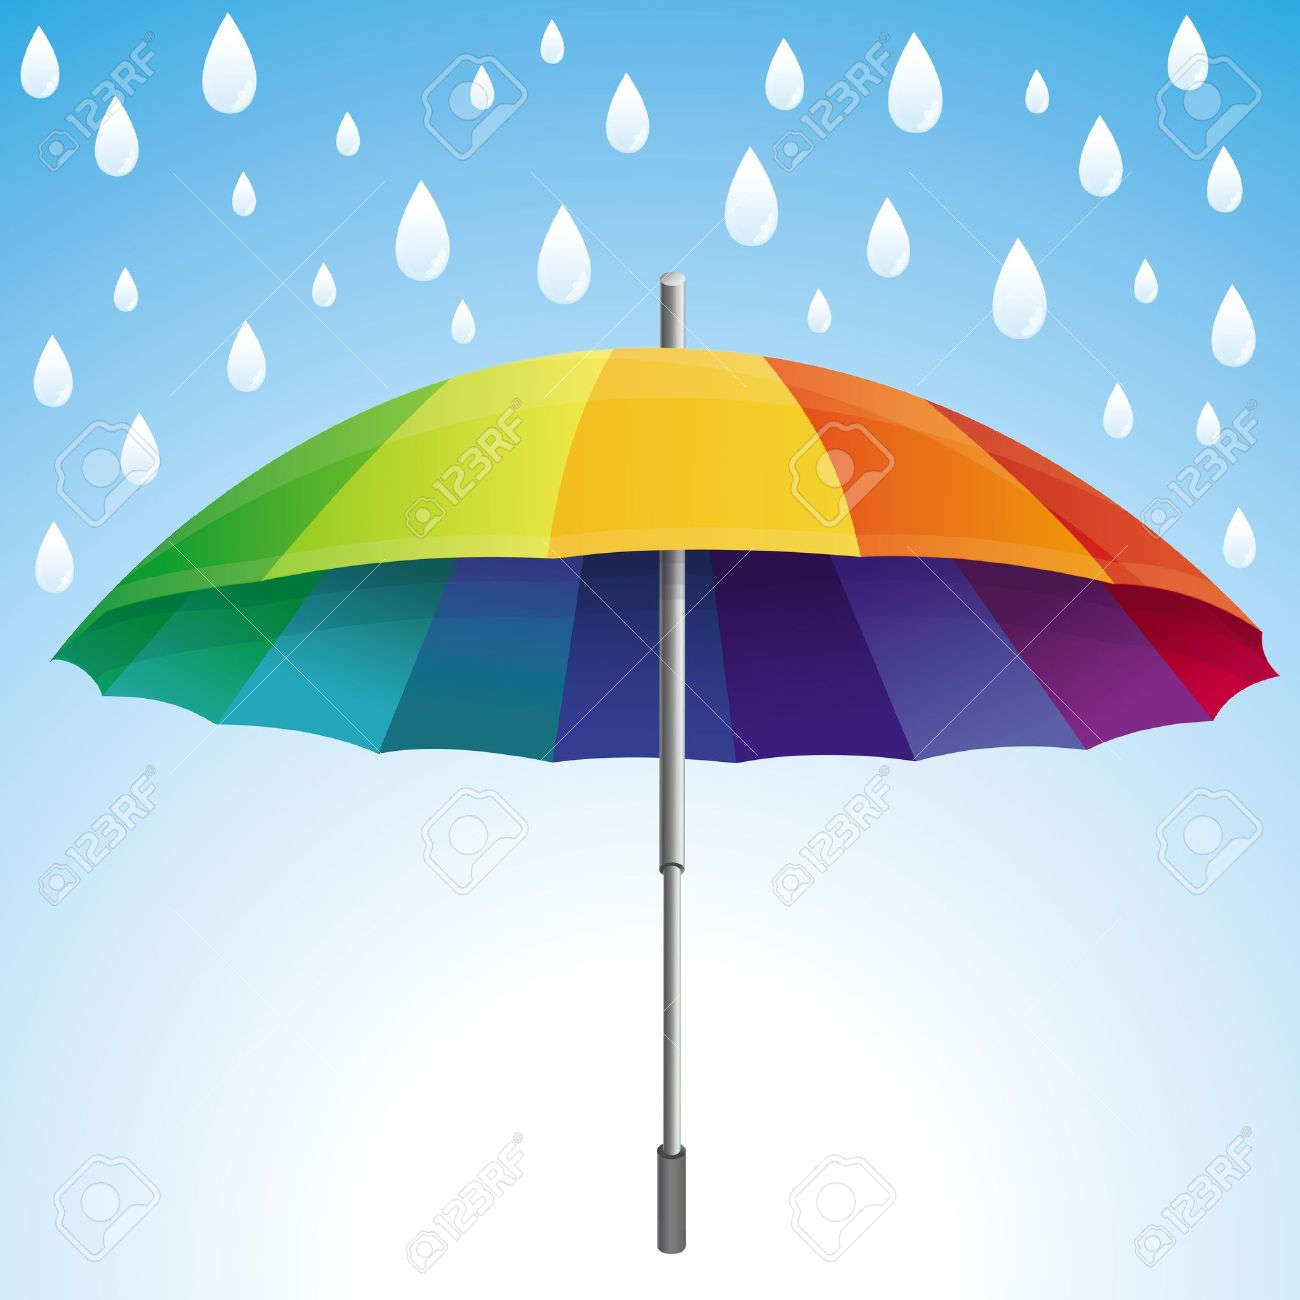 23,730 Umbrella Rain Stock Illustrations, Cliparts And Royalty.